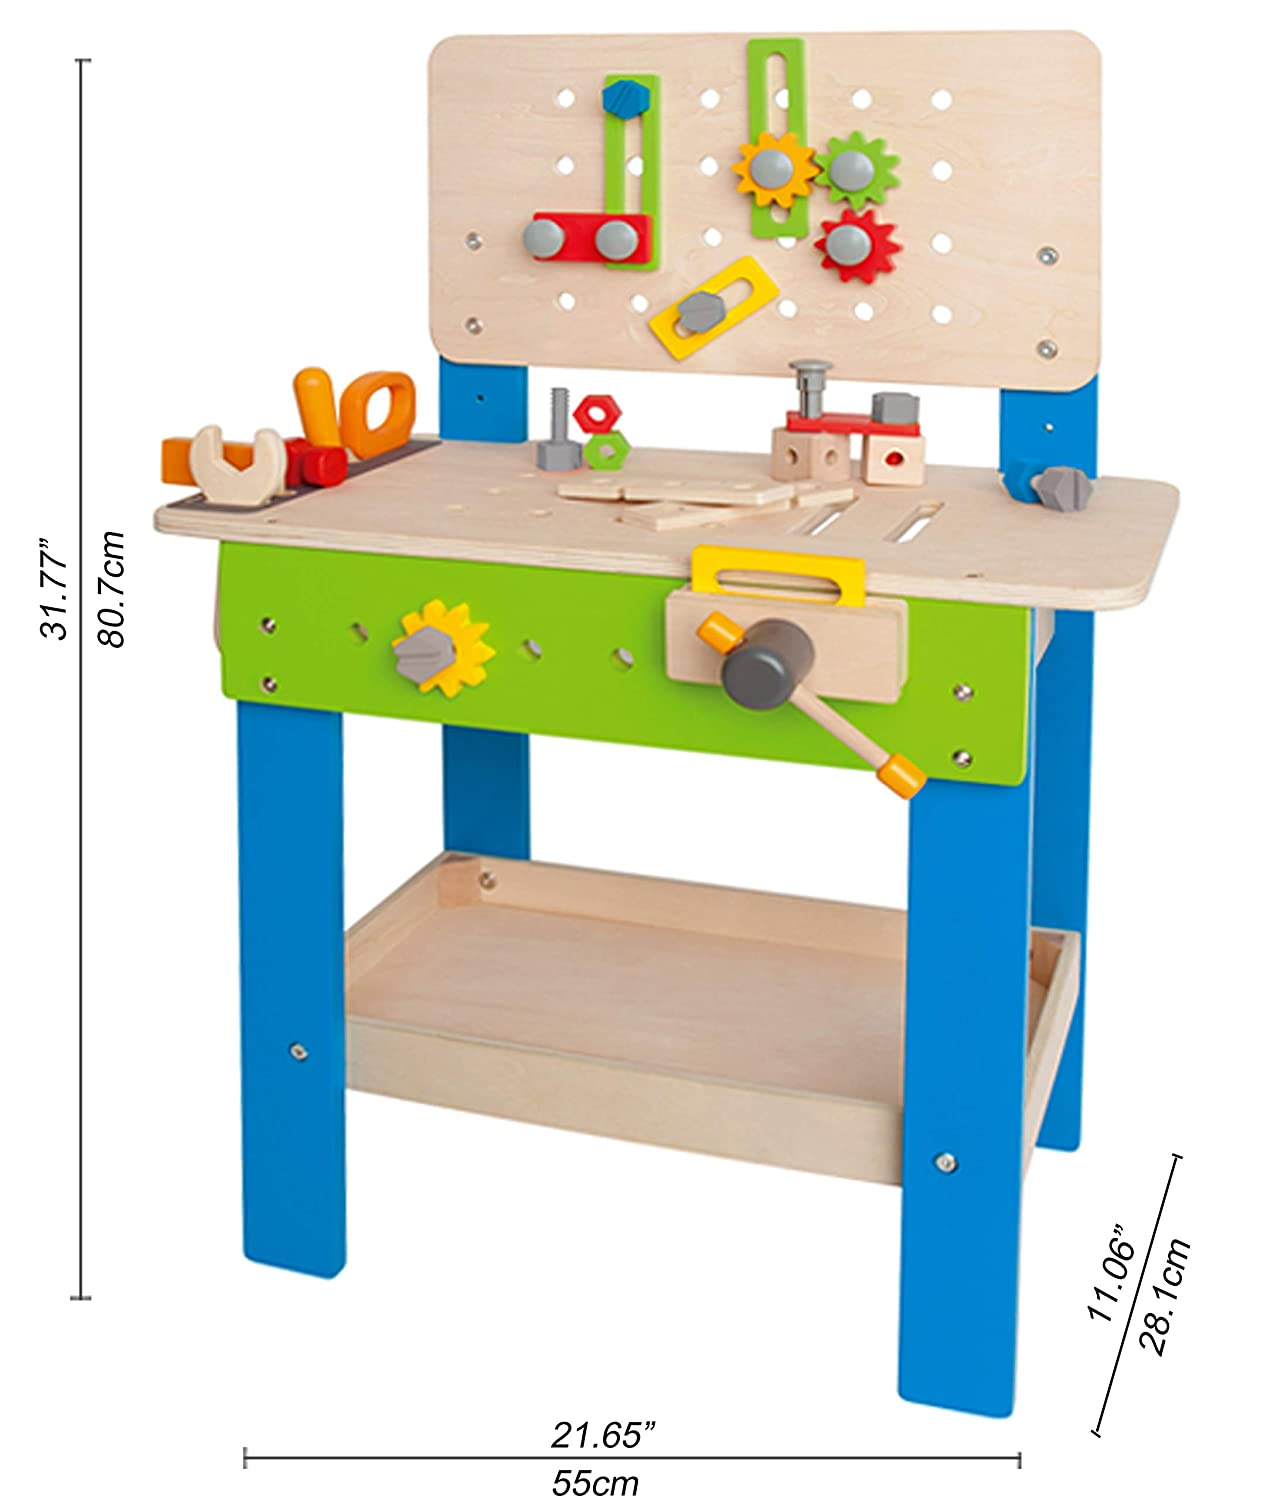 Fabulous Master Workbench By Hape Award Winning Kids Wooden Tool Bench Toy Pretend Play Creative Building Set Height Adjustable 35Piece Workshop For Pabps2019 Chair Design Images Pabps2019Com